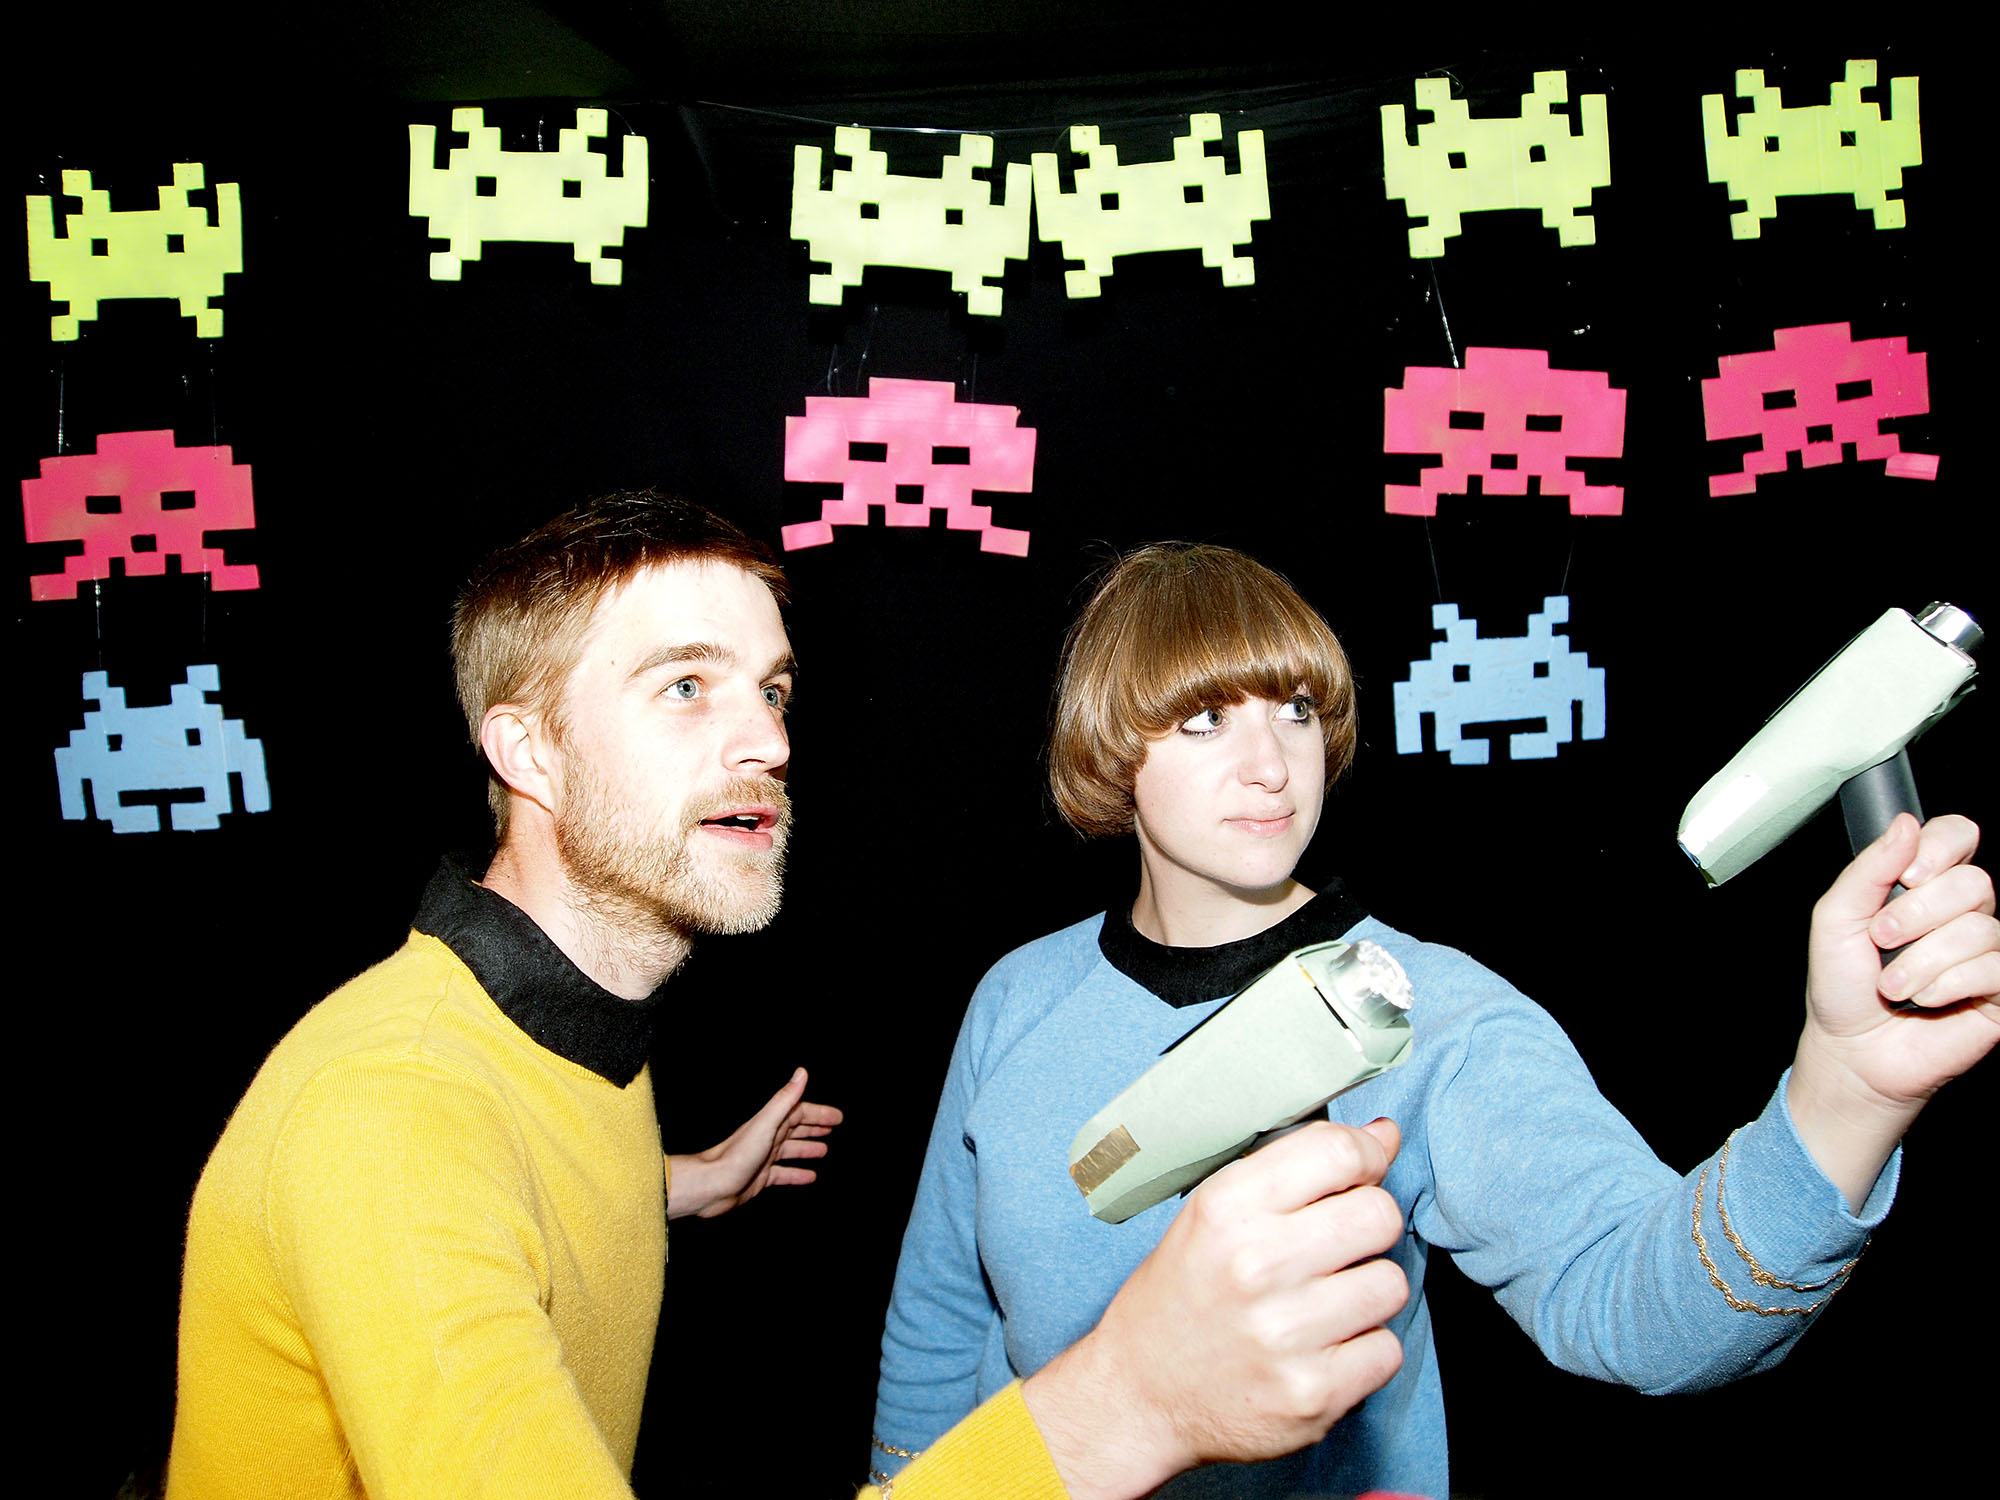 Space Invaders – Photobooth